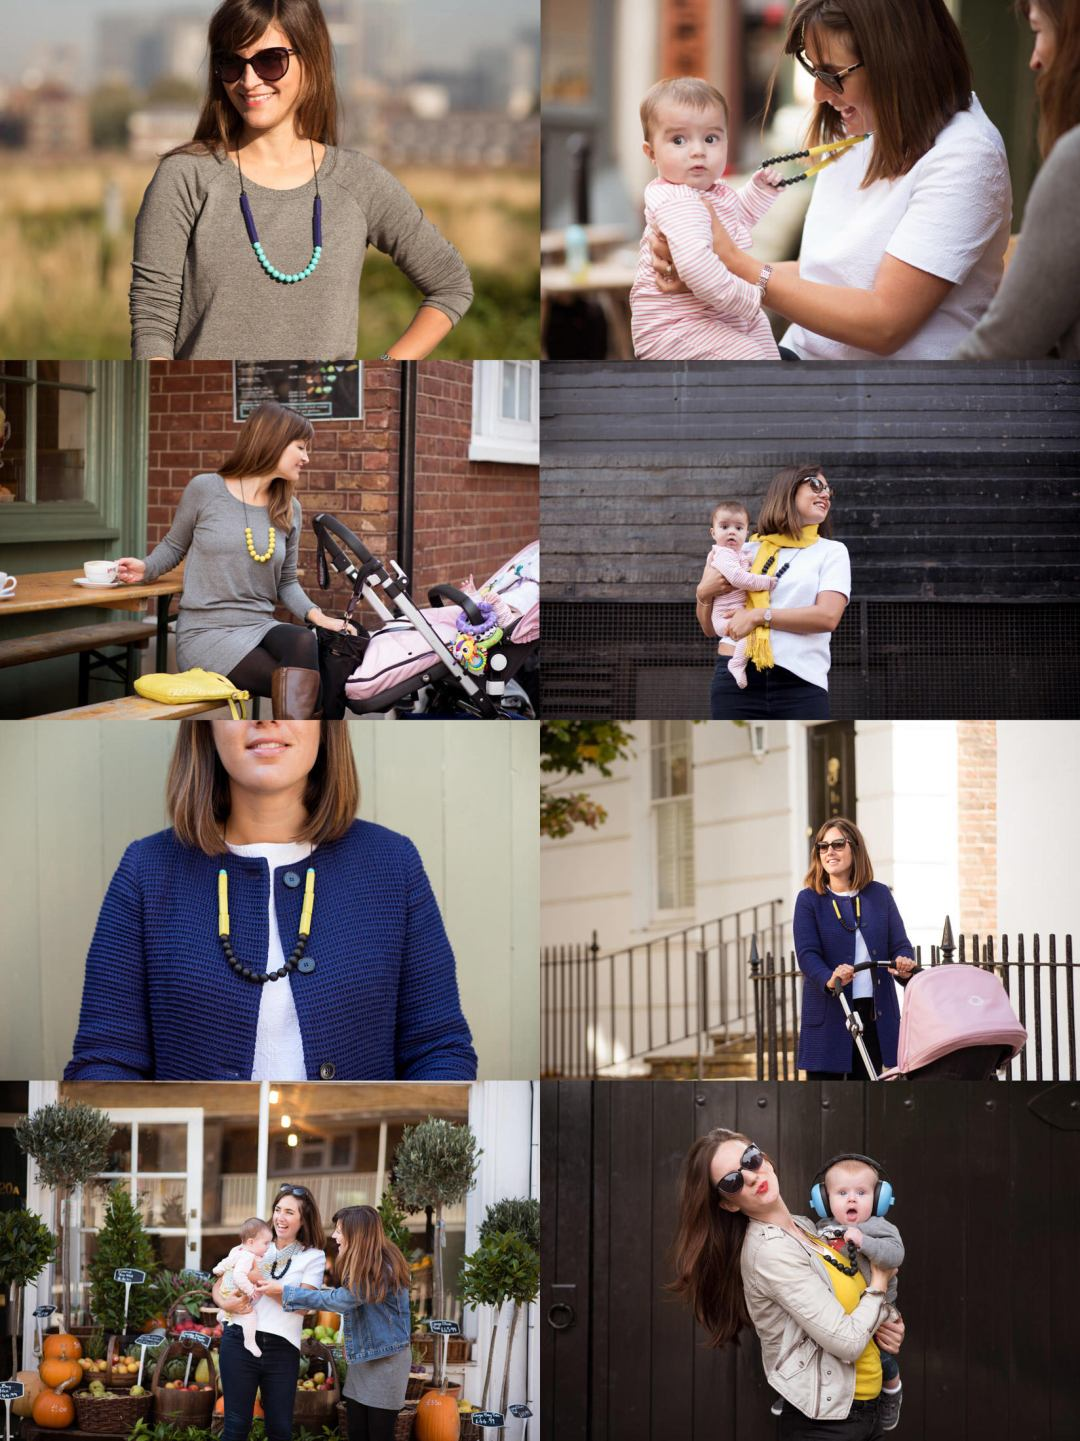 Business lifestyle photography shoot in London